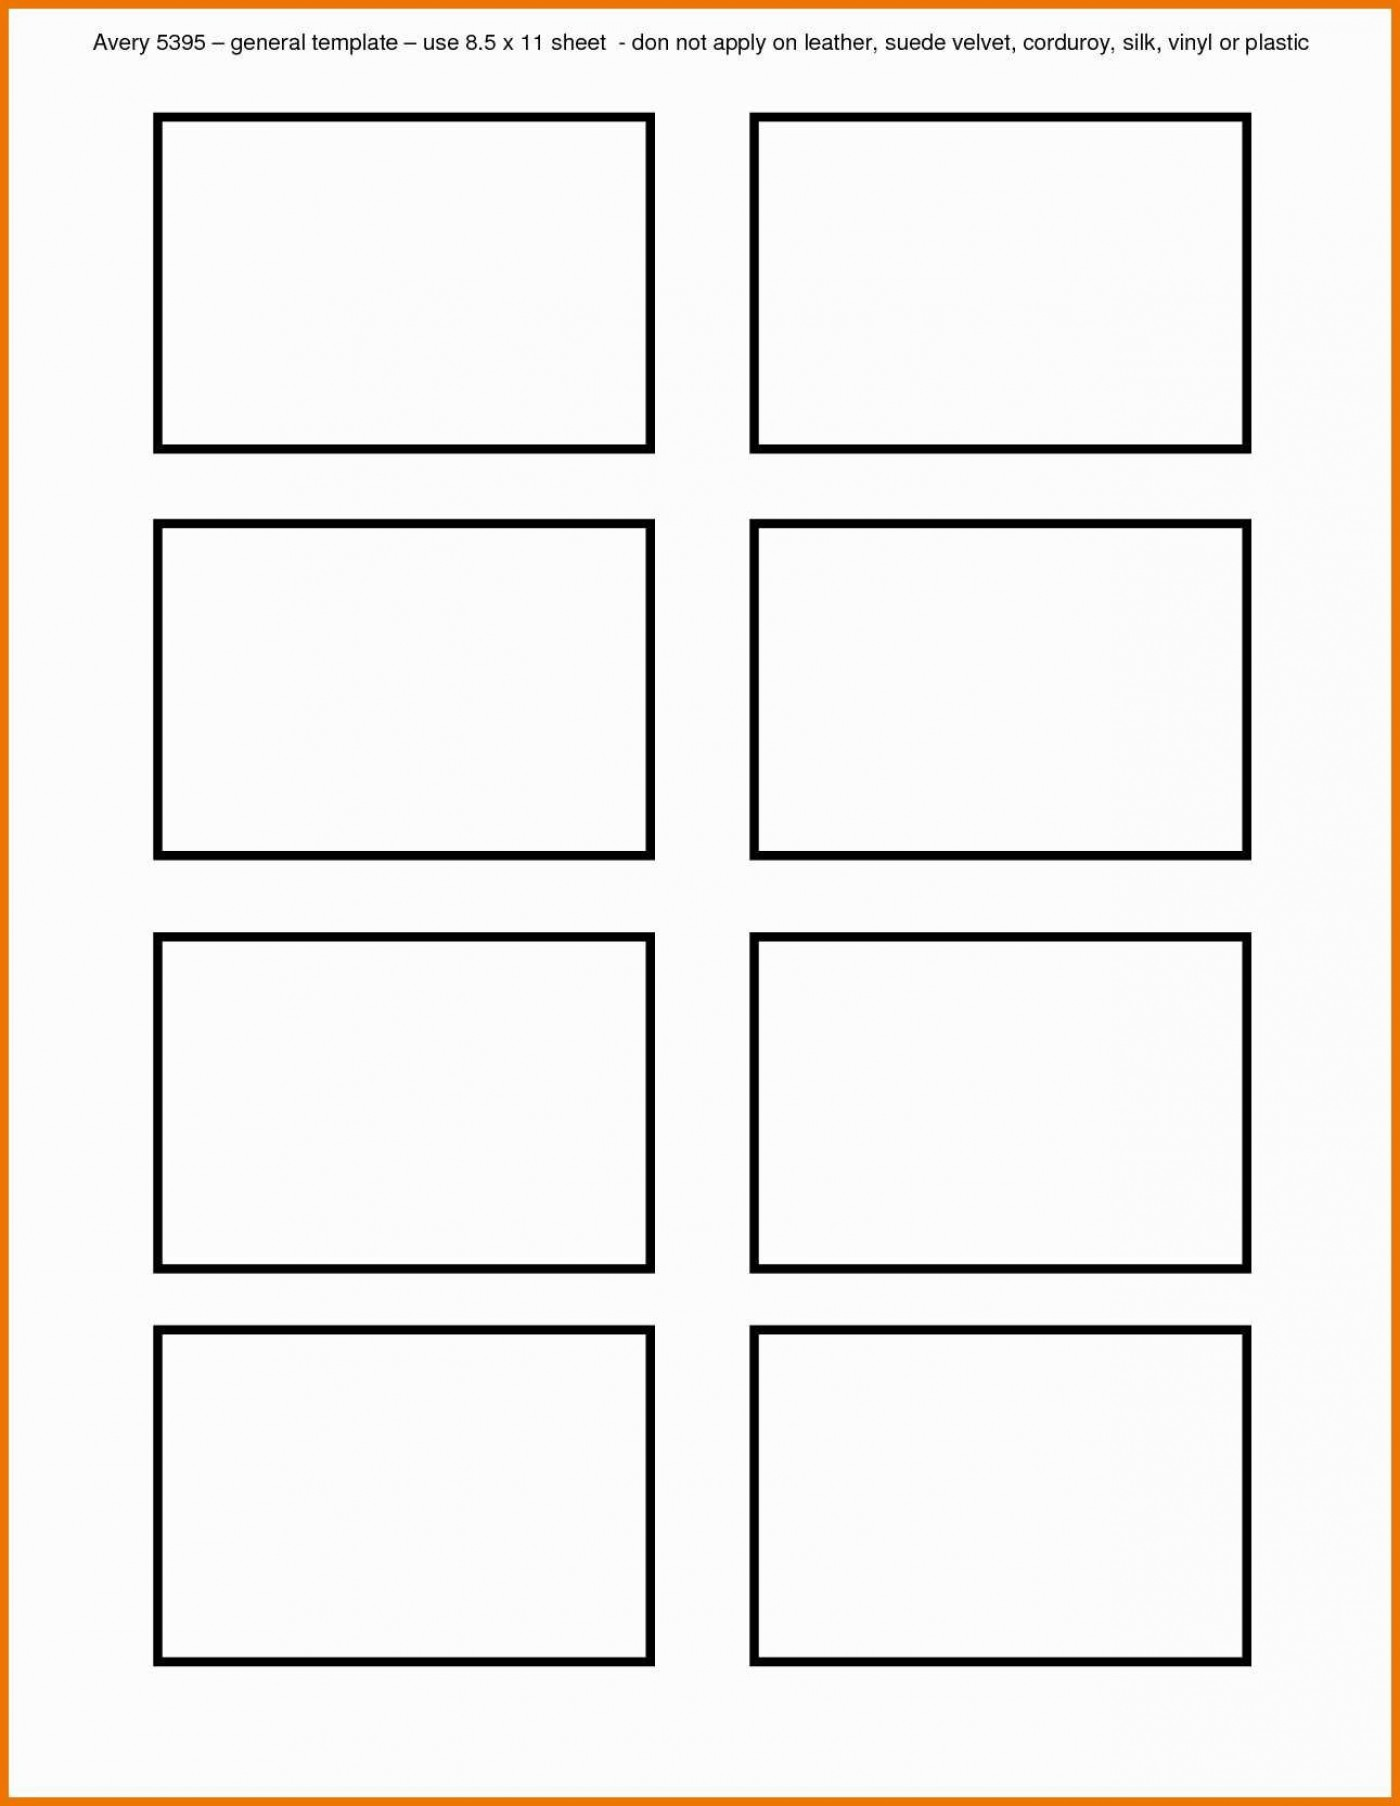 000 Unique Free Printable Card Template Word Concept  Busines Thank You Blank For1400